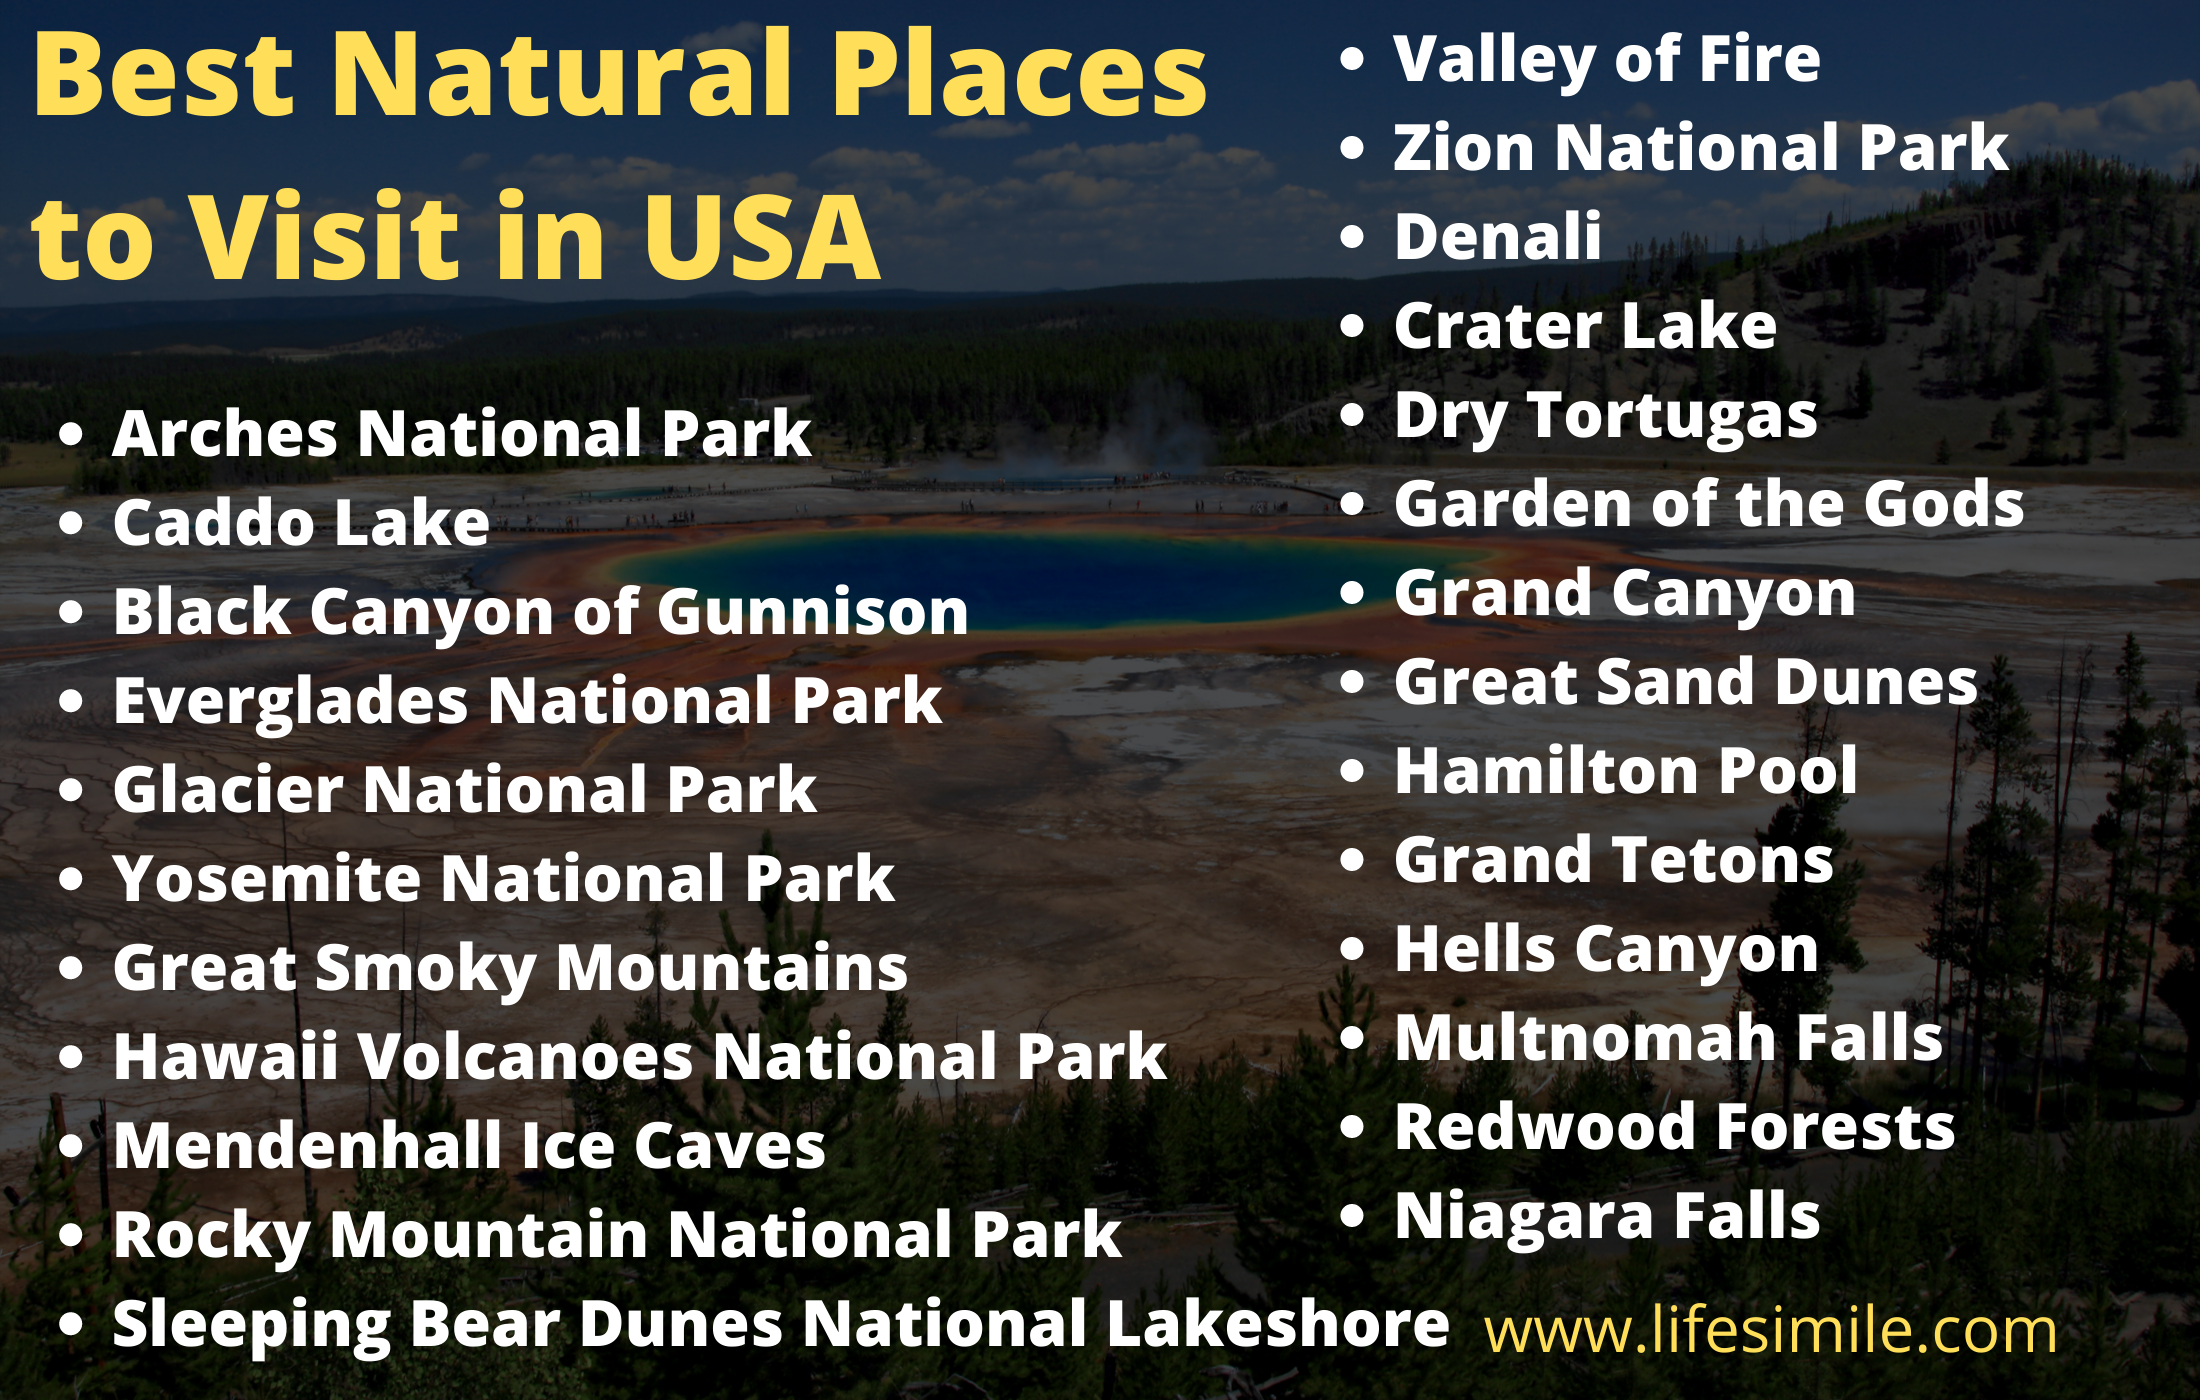 Best Natural Places to Visit in USA best natural places to visit in usa